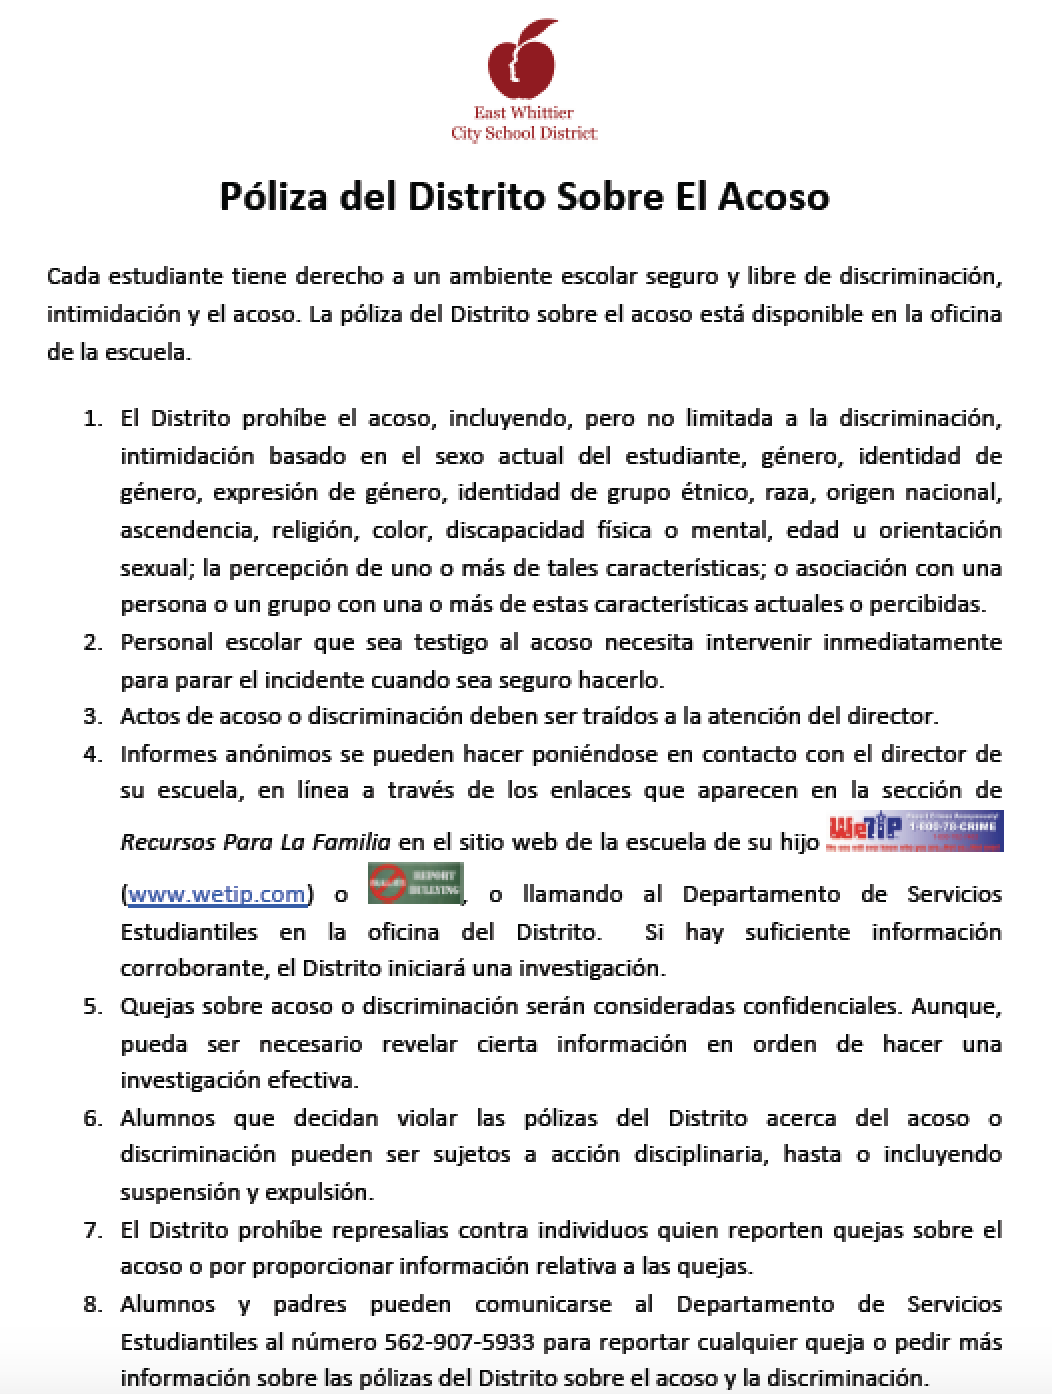 EWCSD district policy on bullying in Spanish